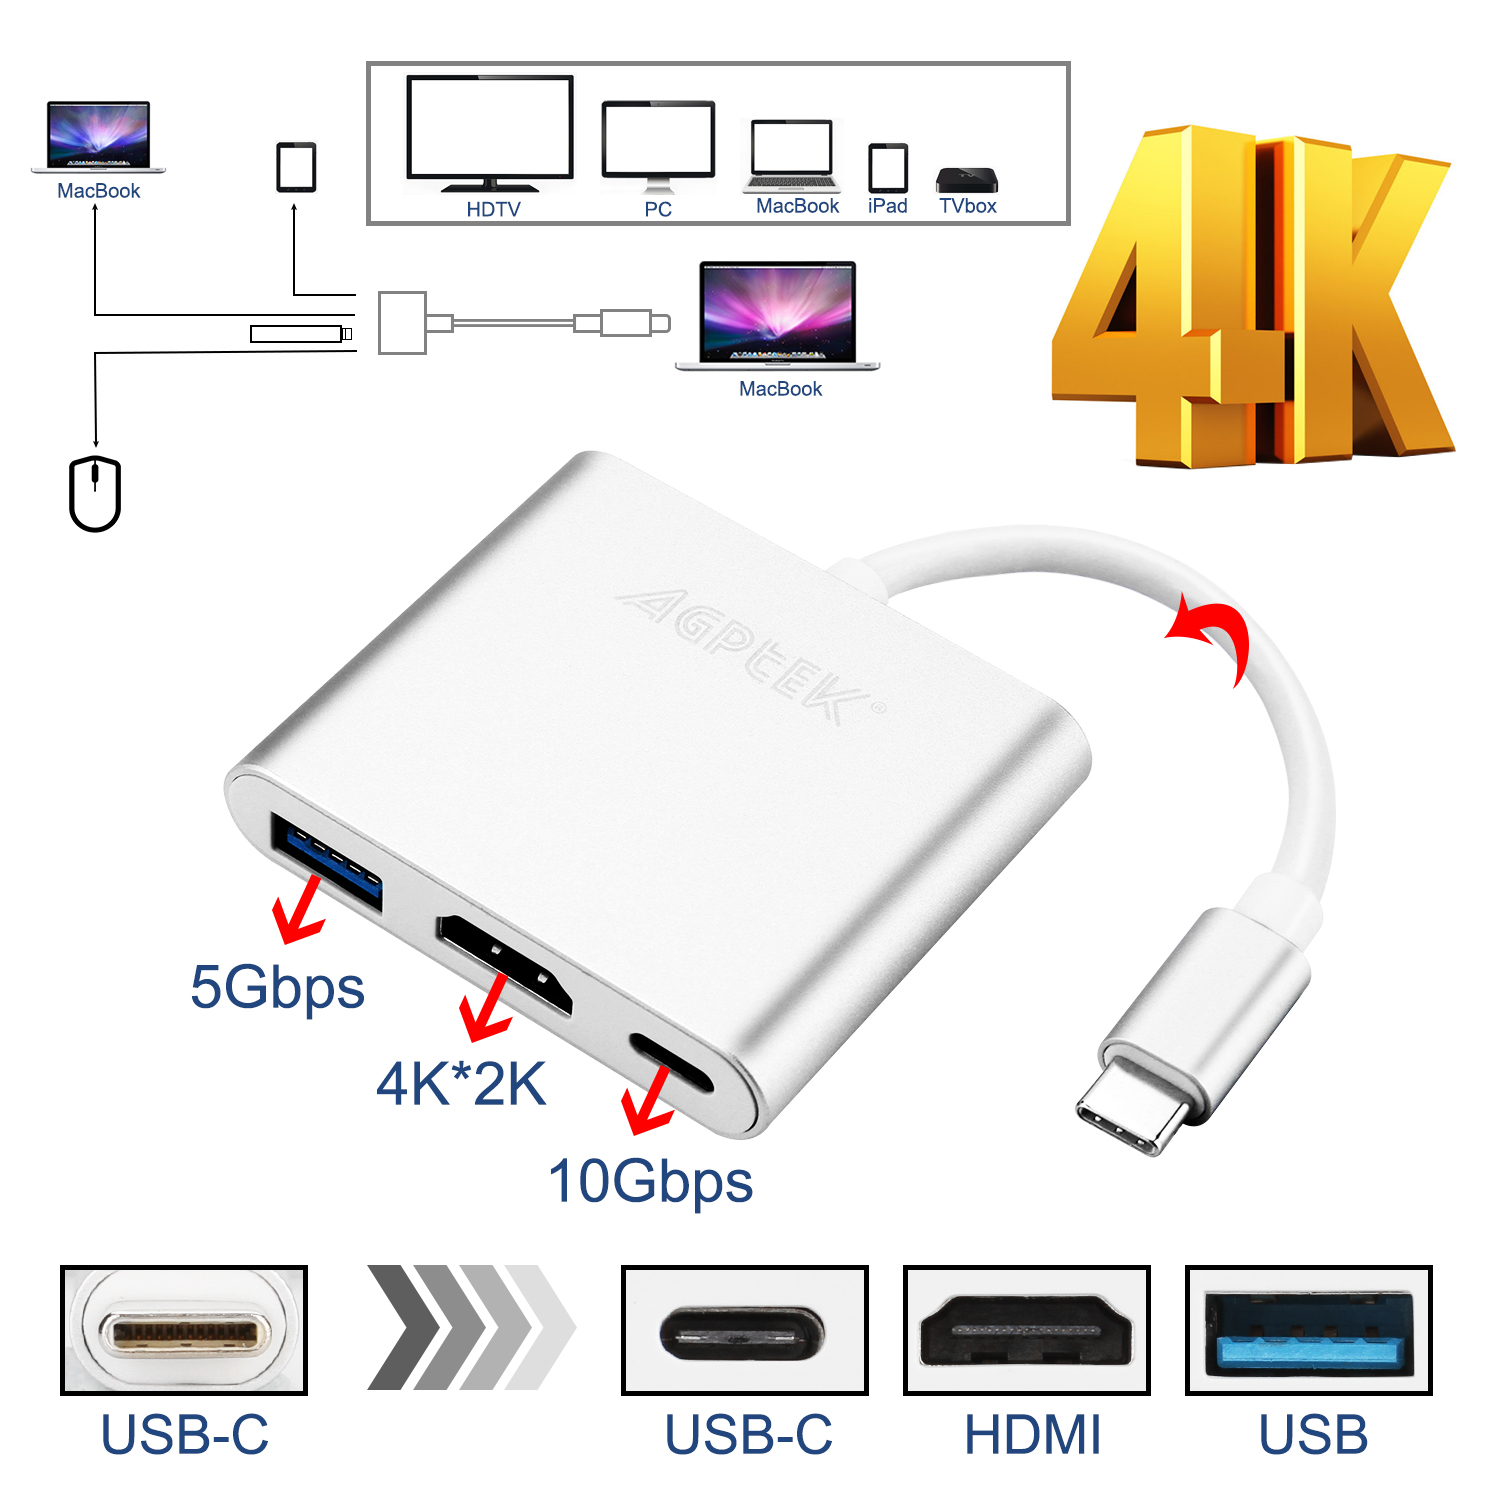 New Type C USB 3.1 to USB-C 4K HDMI USB3.0 Adapter 3 in 1 Hub For Macbook PC